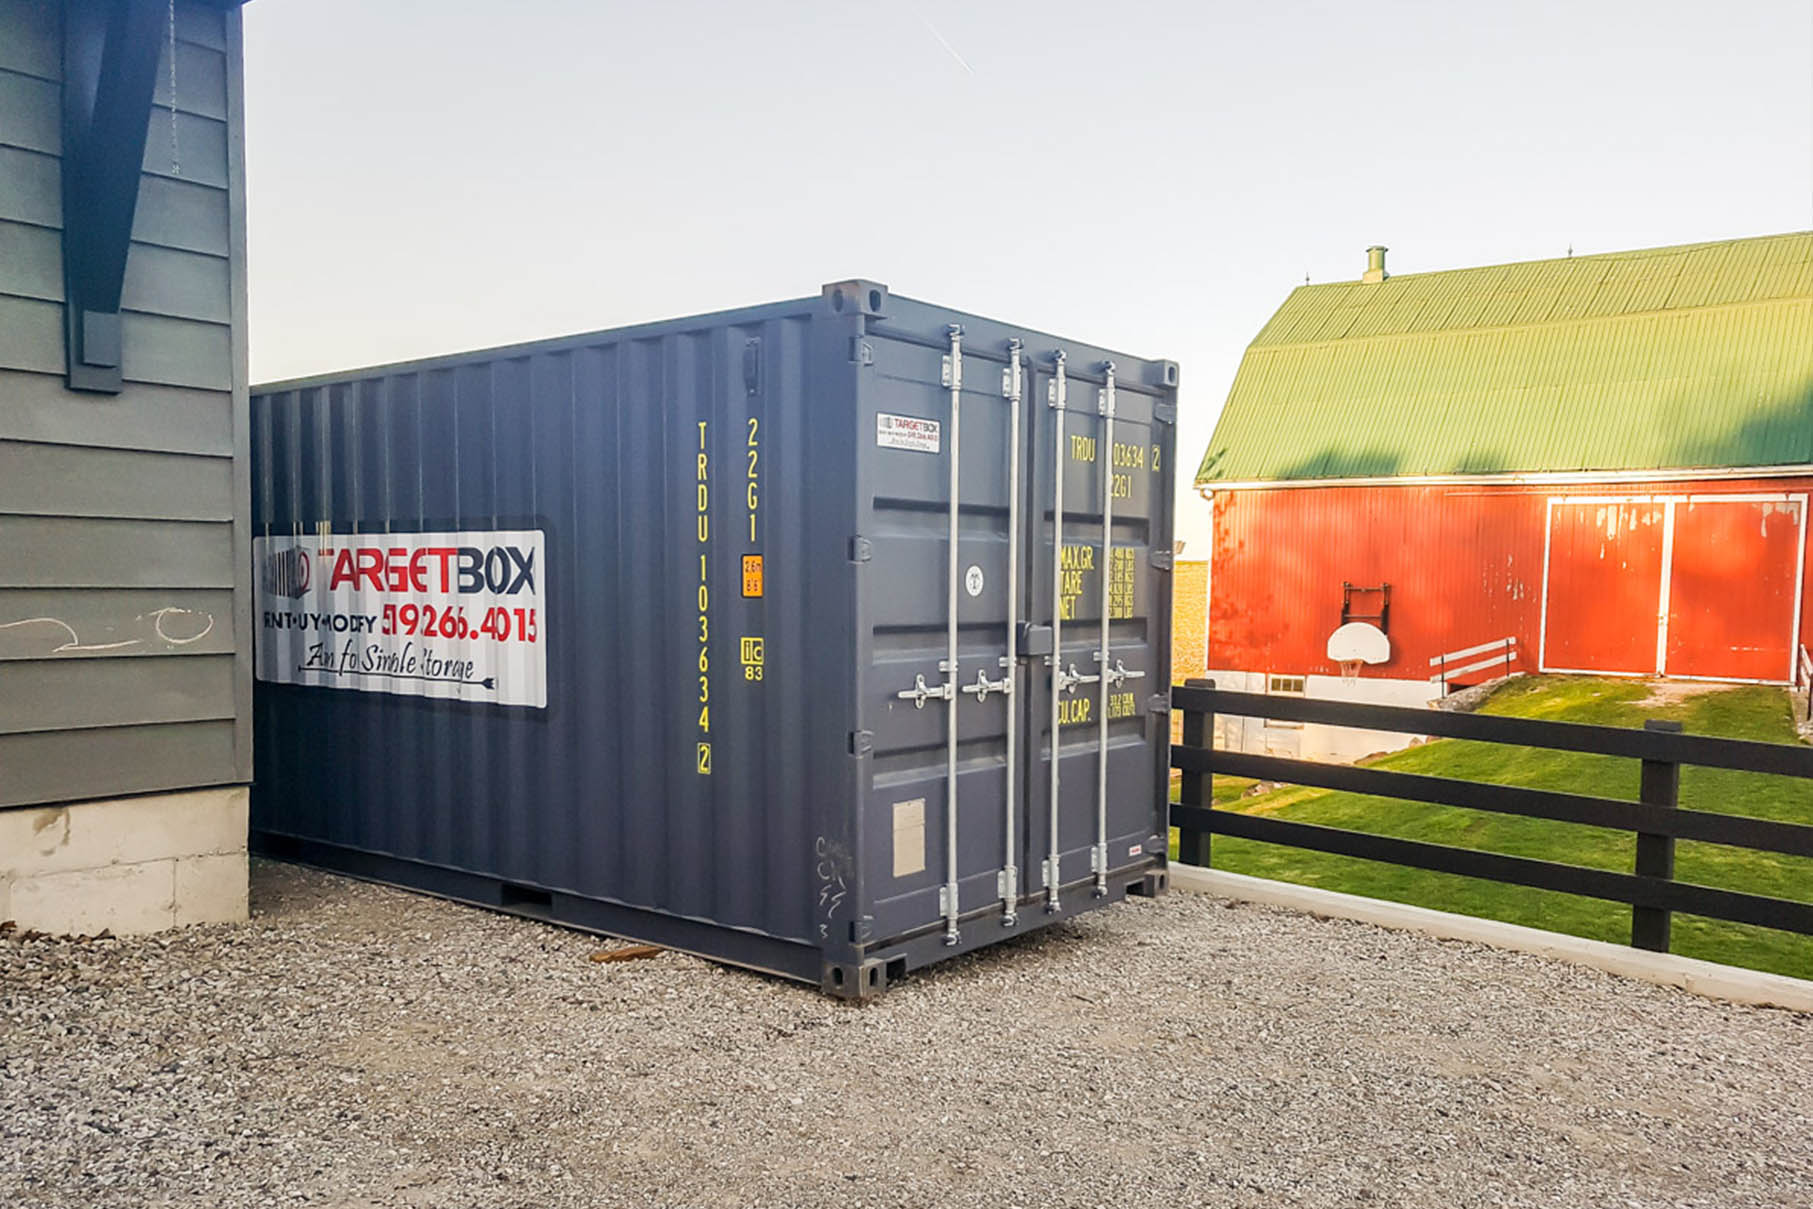 Storage Pods for Residential Use in Abbotsford BC